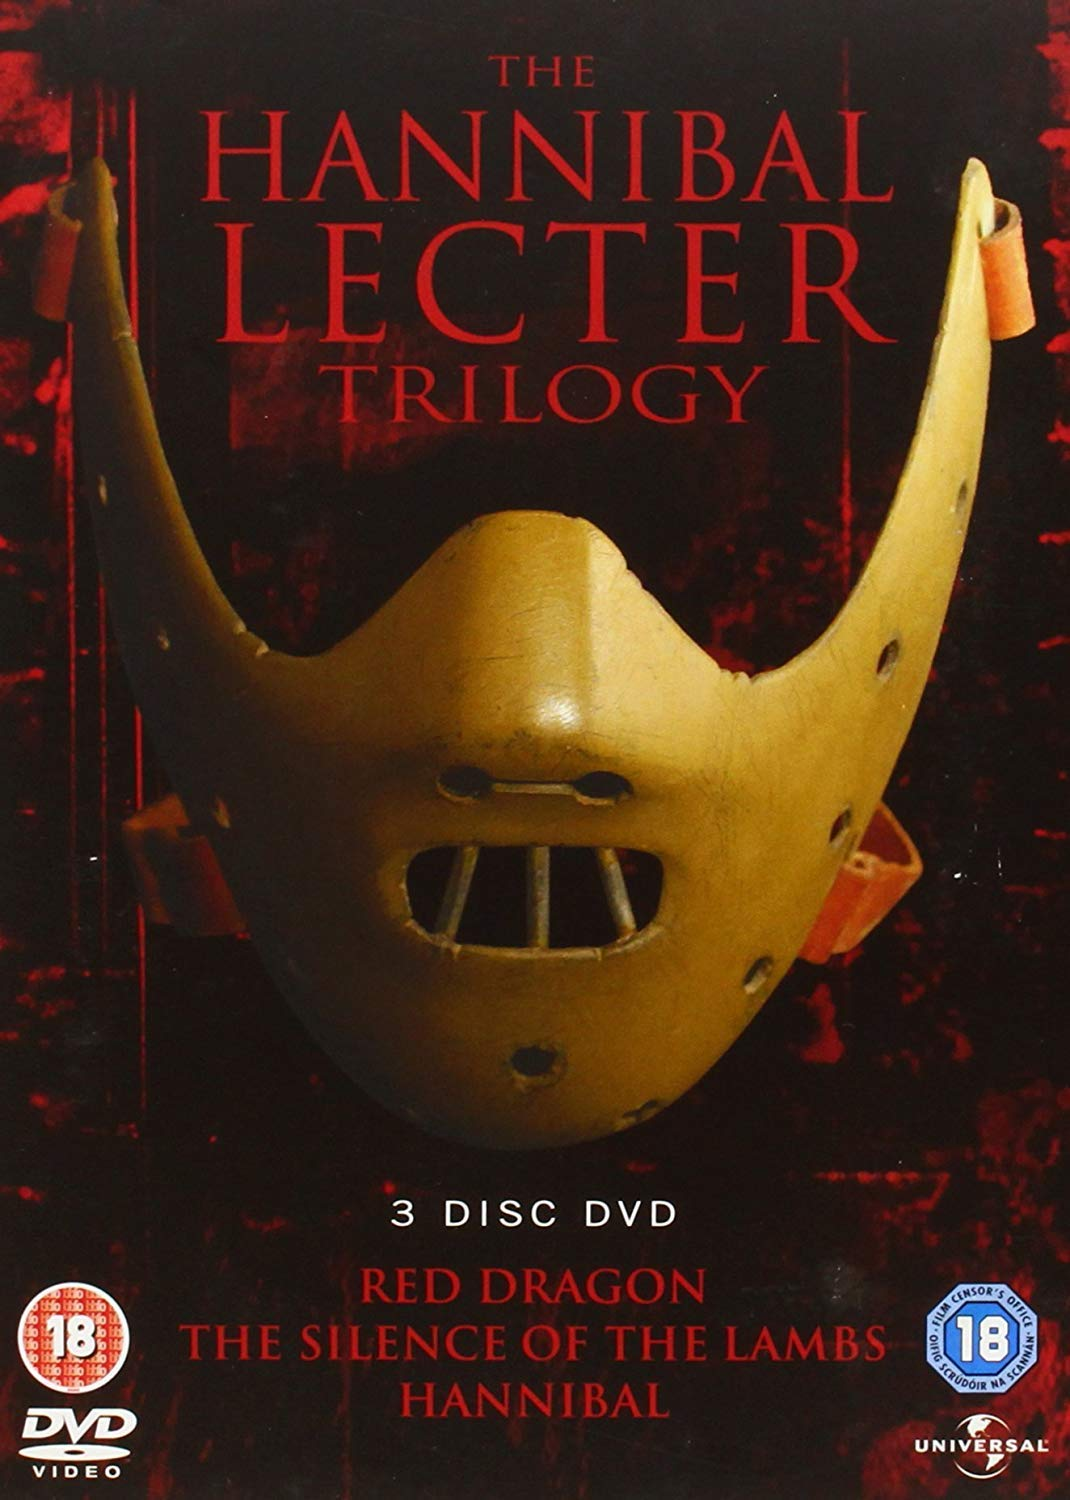 The Hannibal Lecter Trilogy [DVD] by Anthony Hopkins: Amazon.es: Cine y Series TV